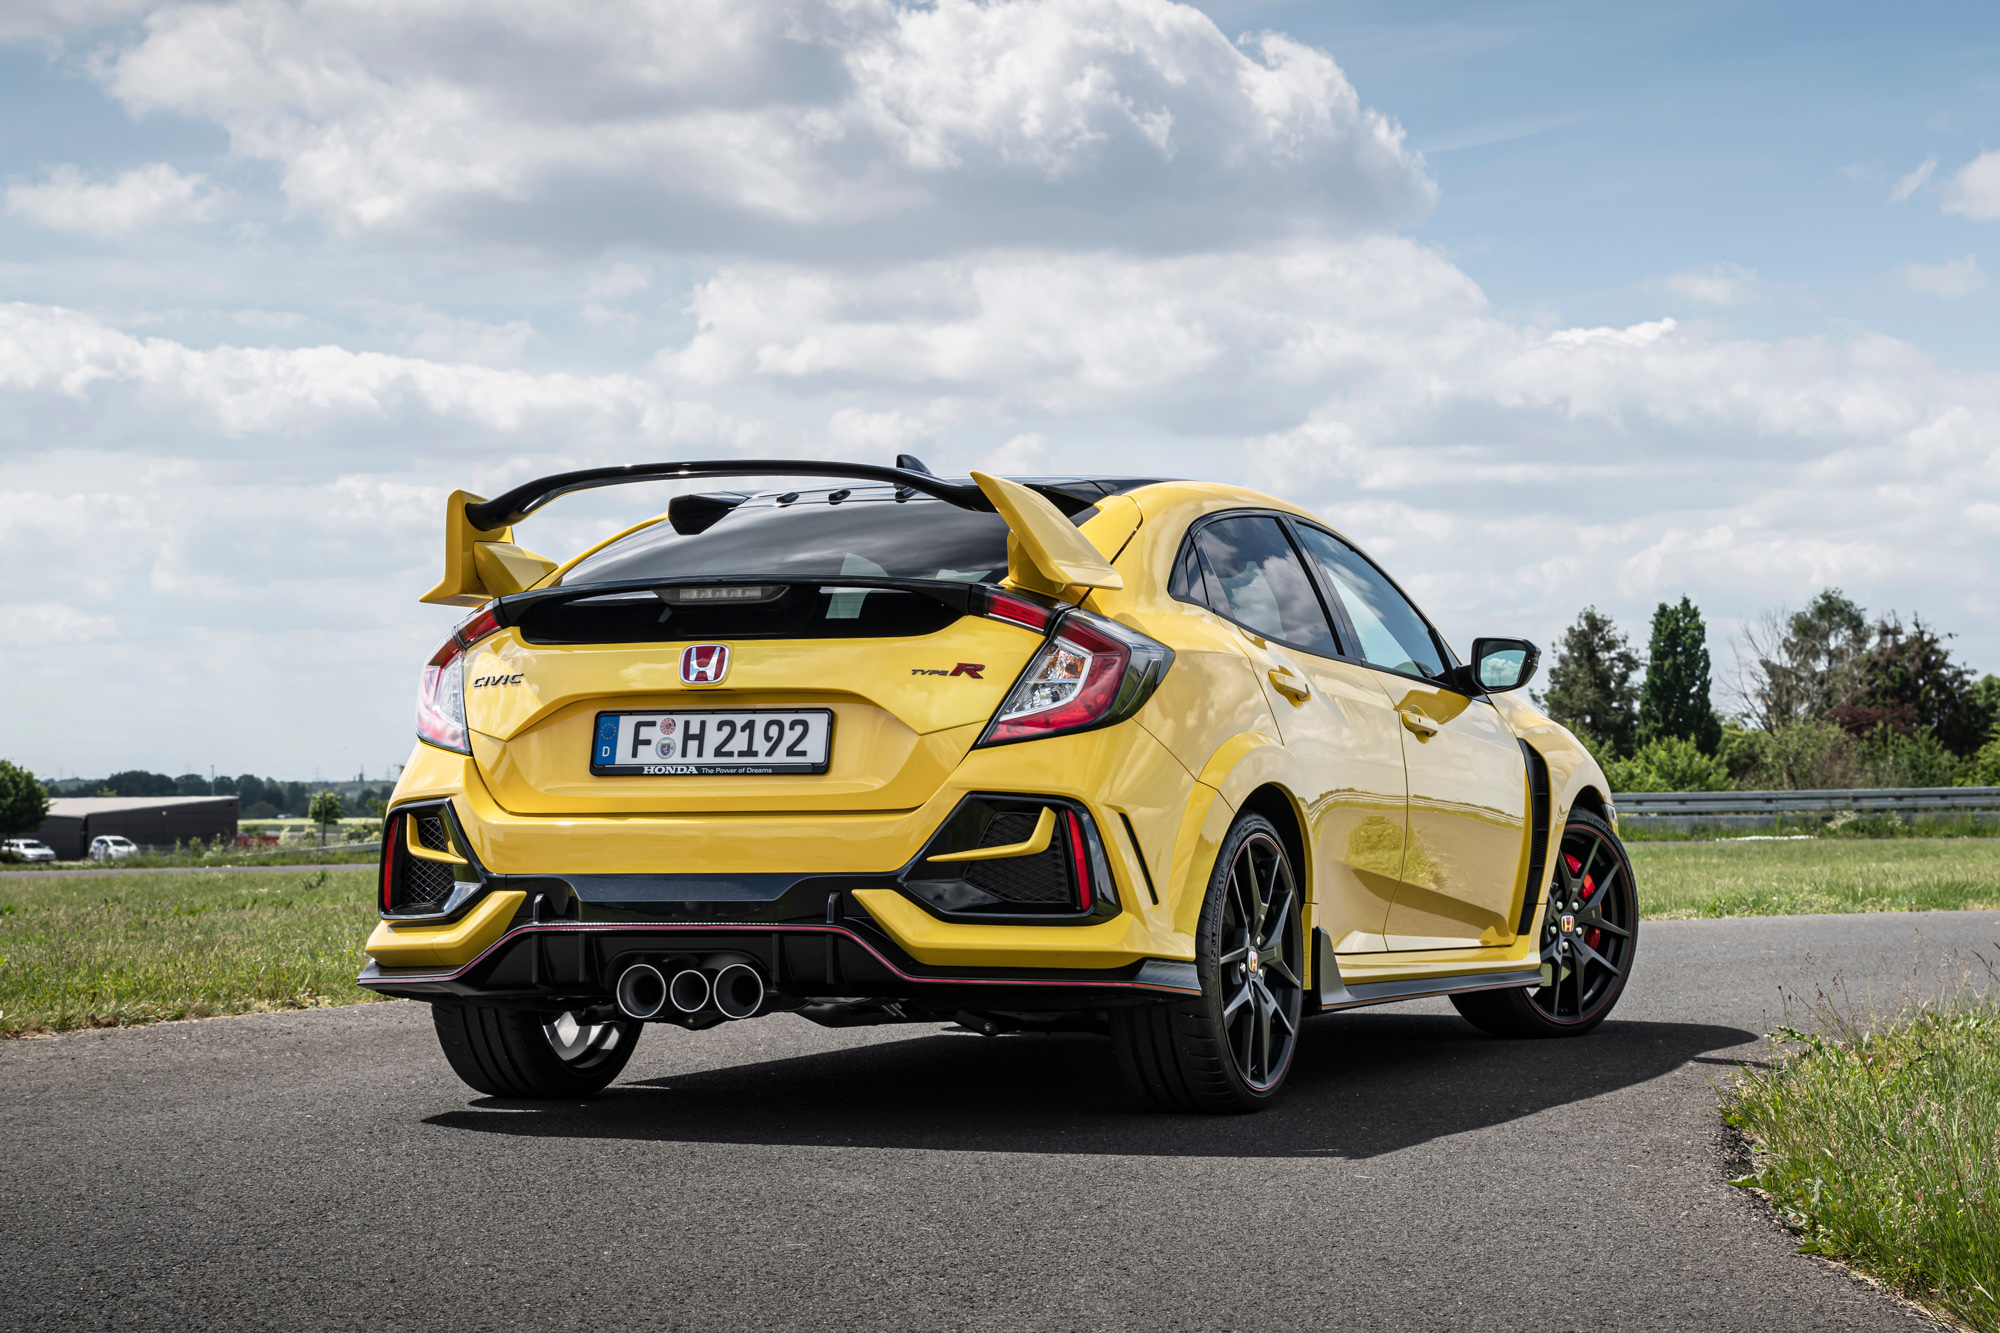 hondacivictyper2021limited-cafeautovn-2